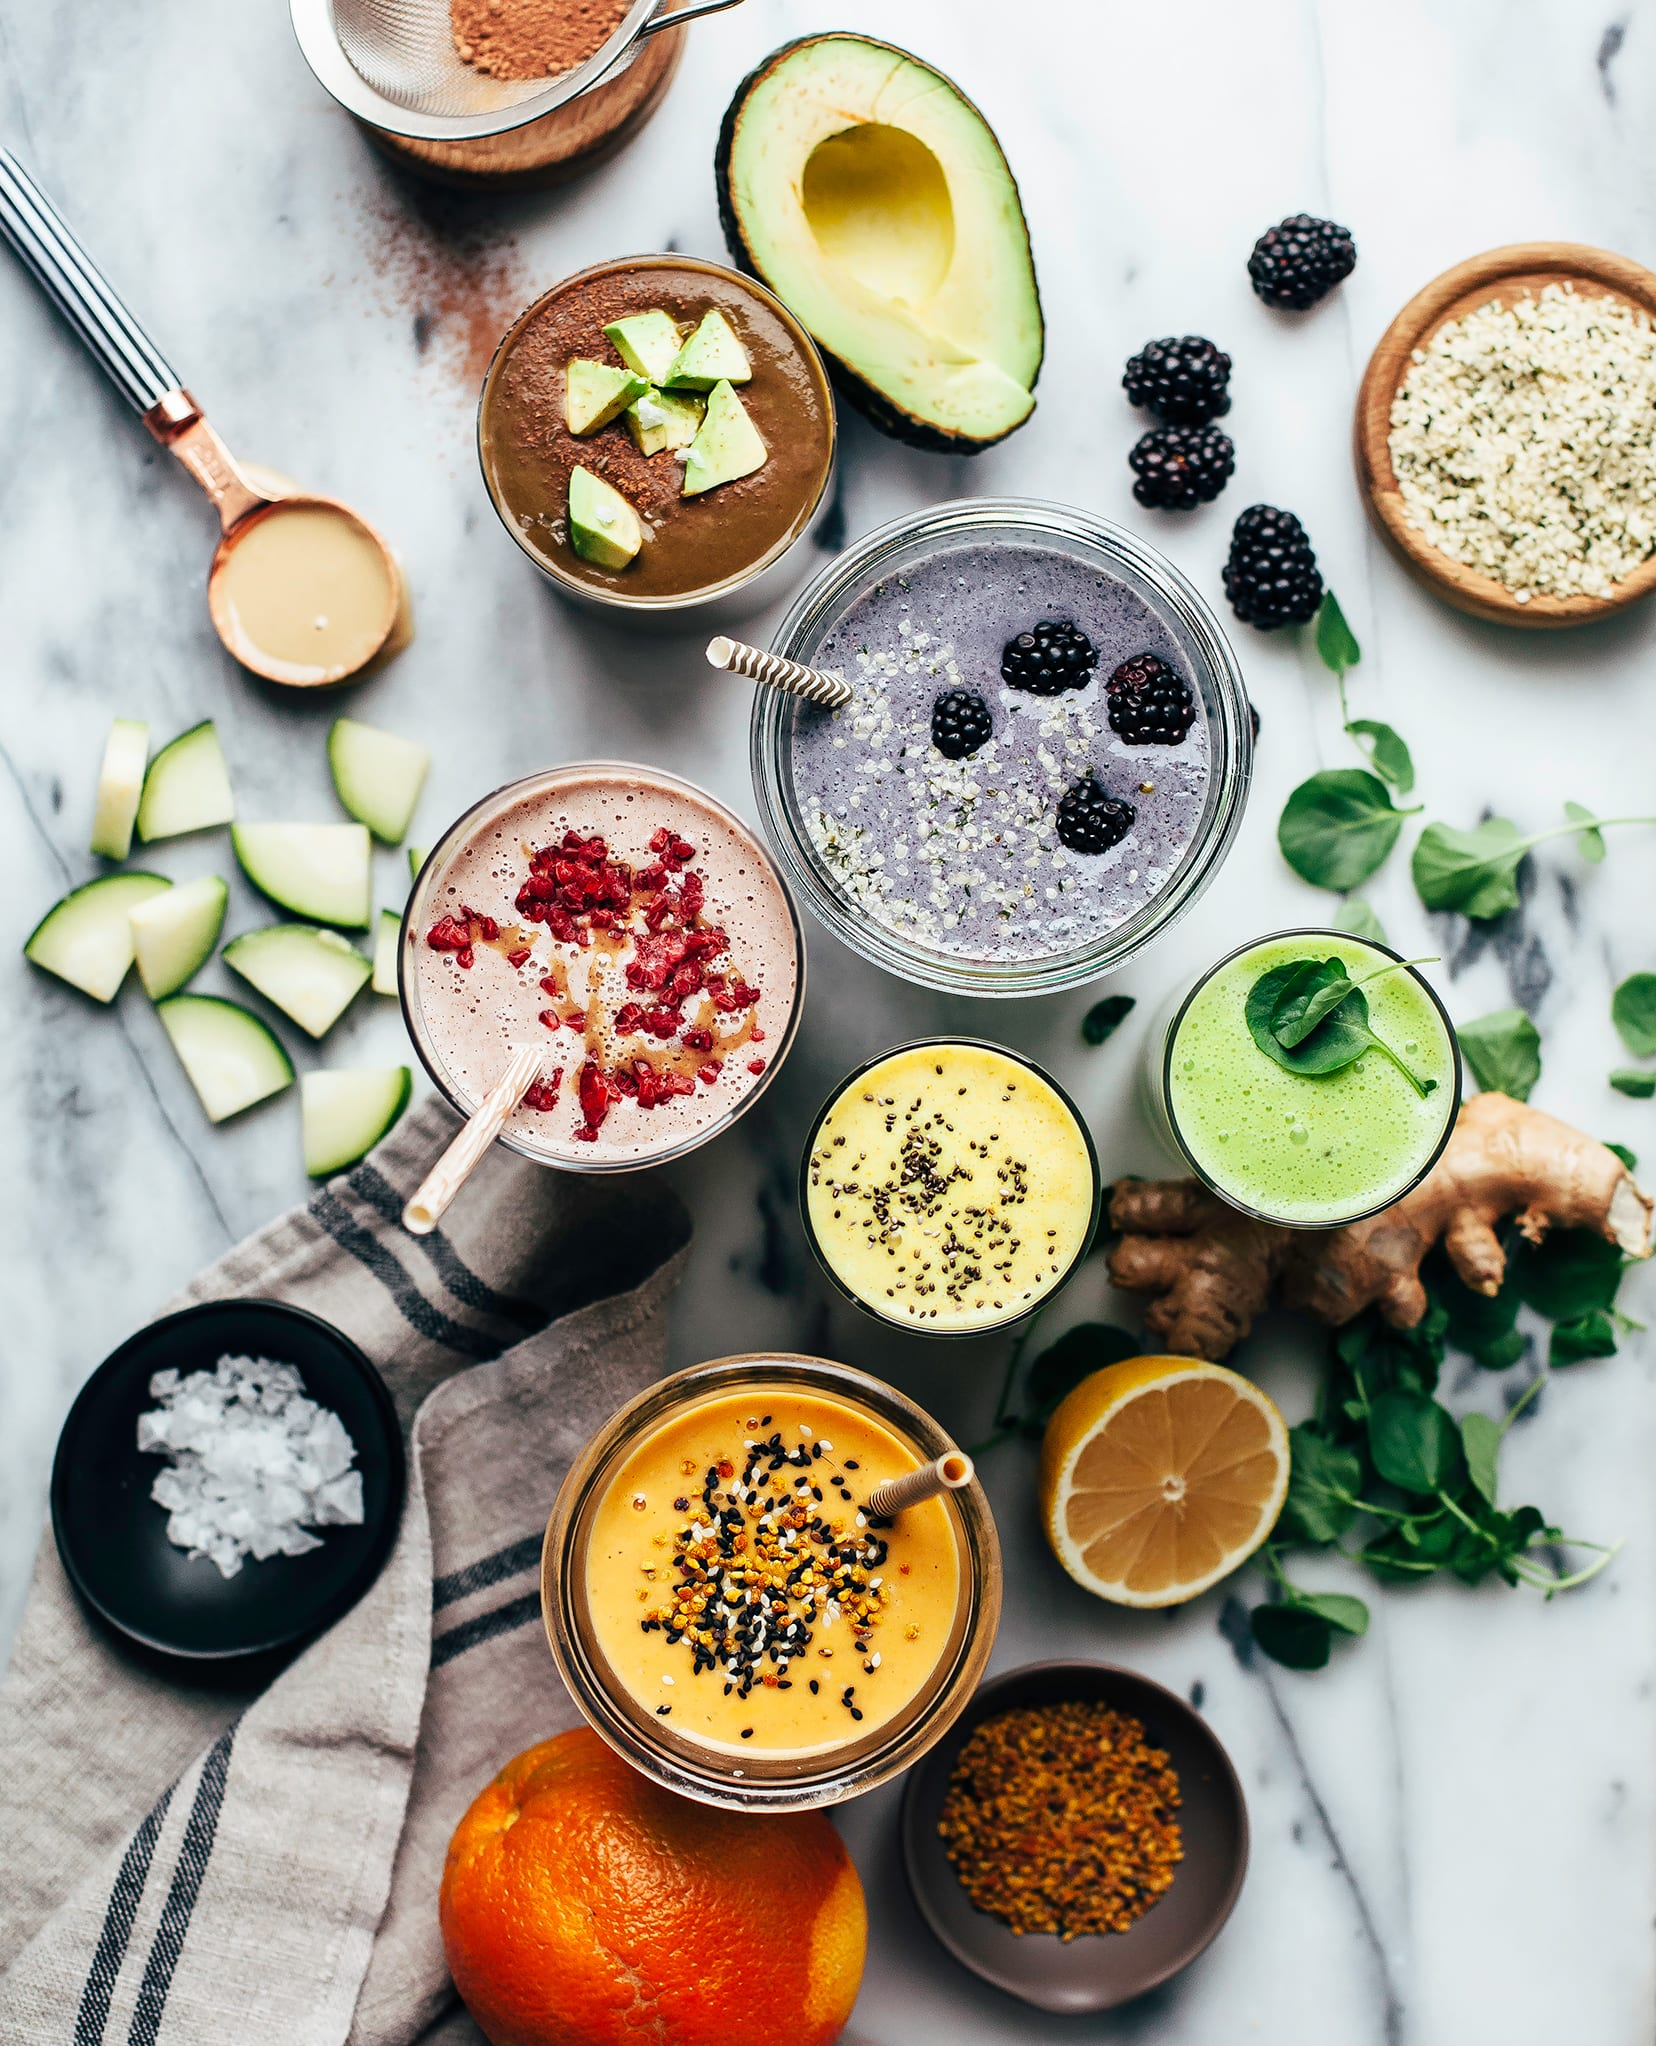 An overhead shot of some healthy vegan smoothies on a marble background. Ingredients are arranged around the smoothies, along with a beige tea towel.